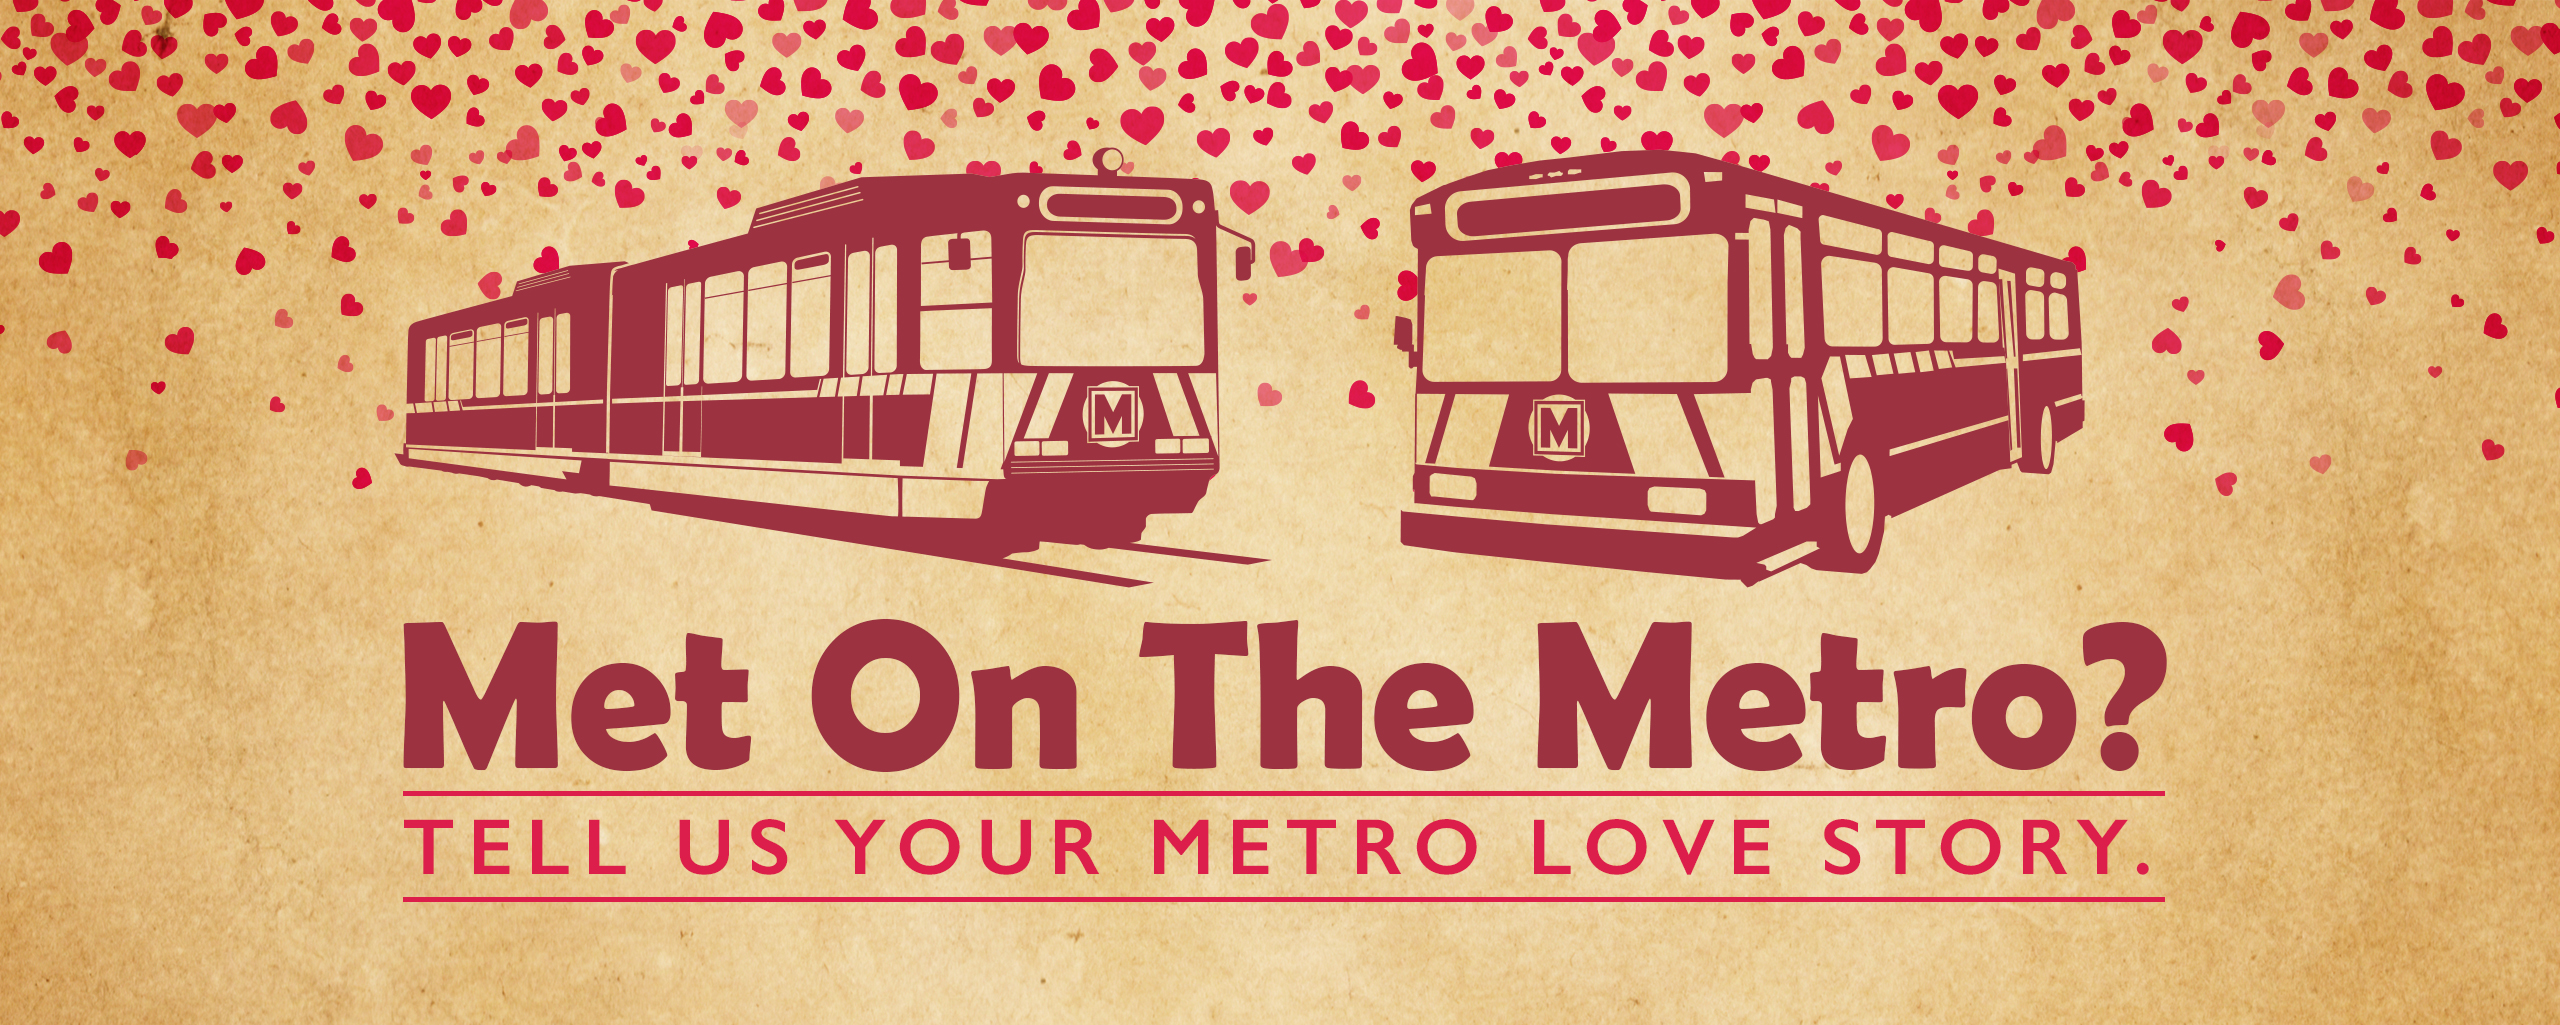 ' ' from the web at 'http://www.metrostlouis.org/wp-content/uploads/2018/01/CM170910-Valentines-Day-Web-Slider-1.jpg'